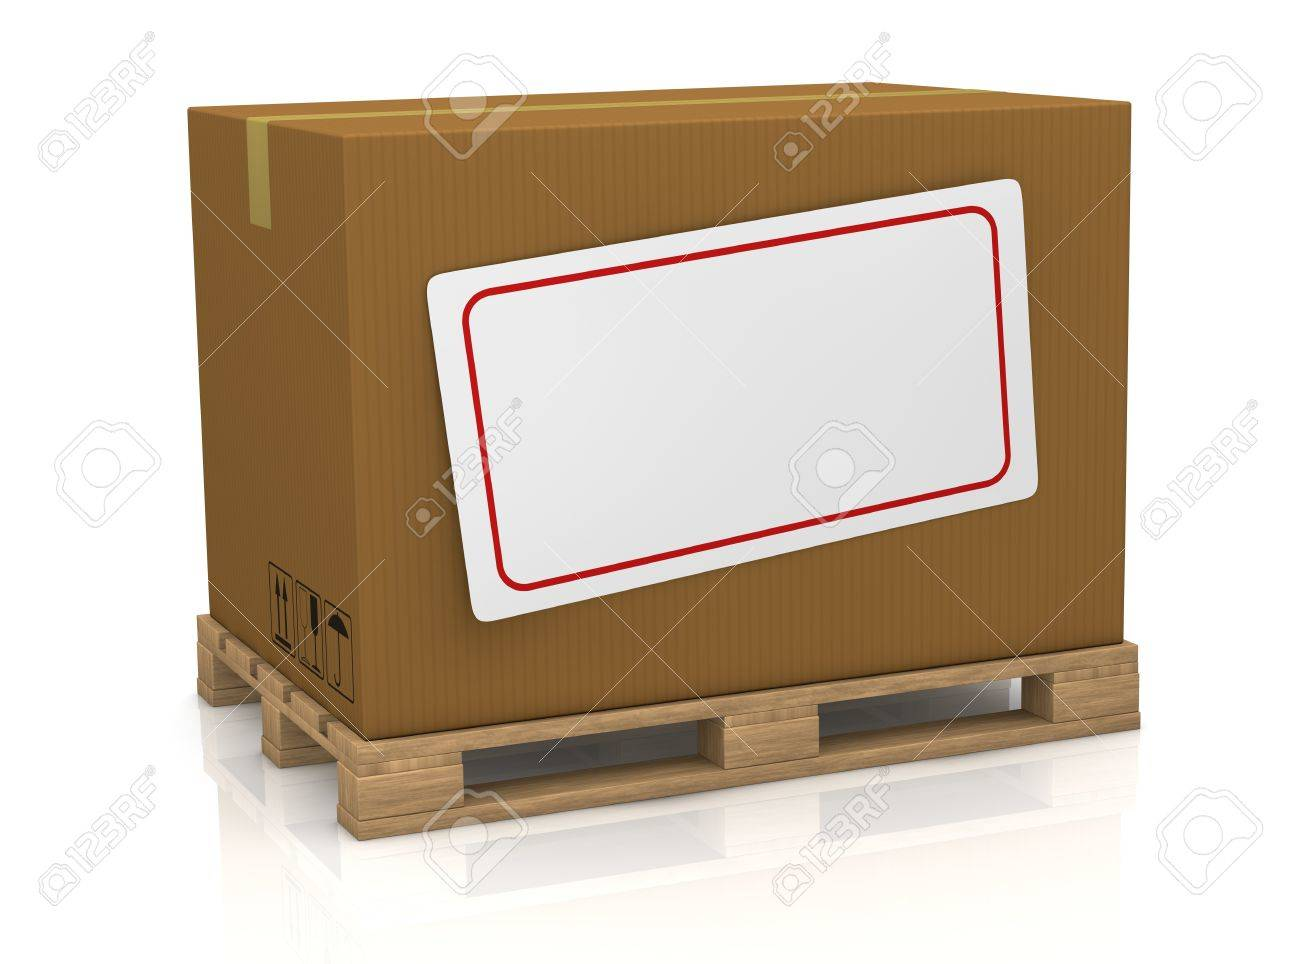 one carton box over a pallet, with a white label for custom text